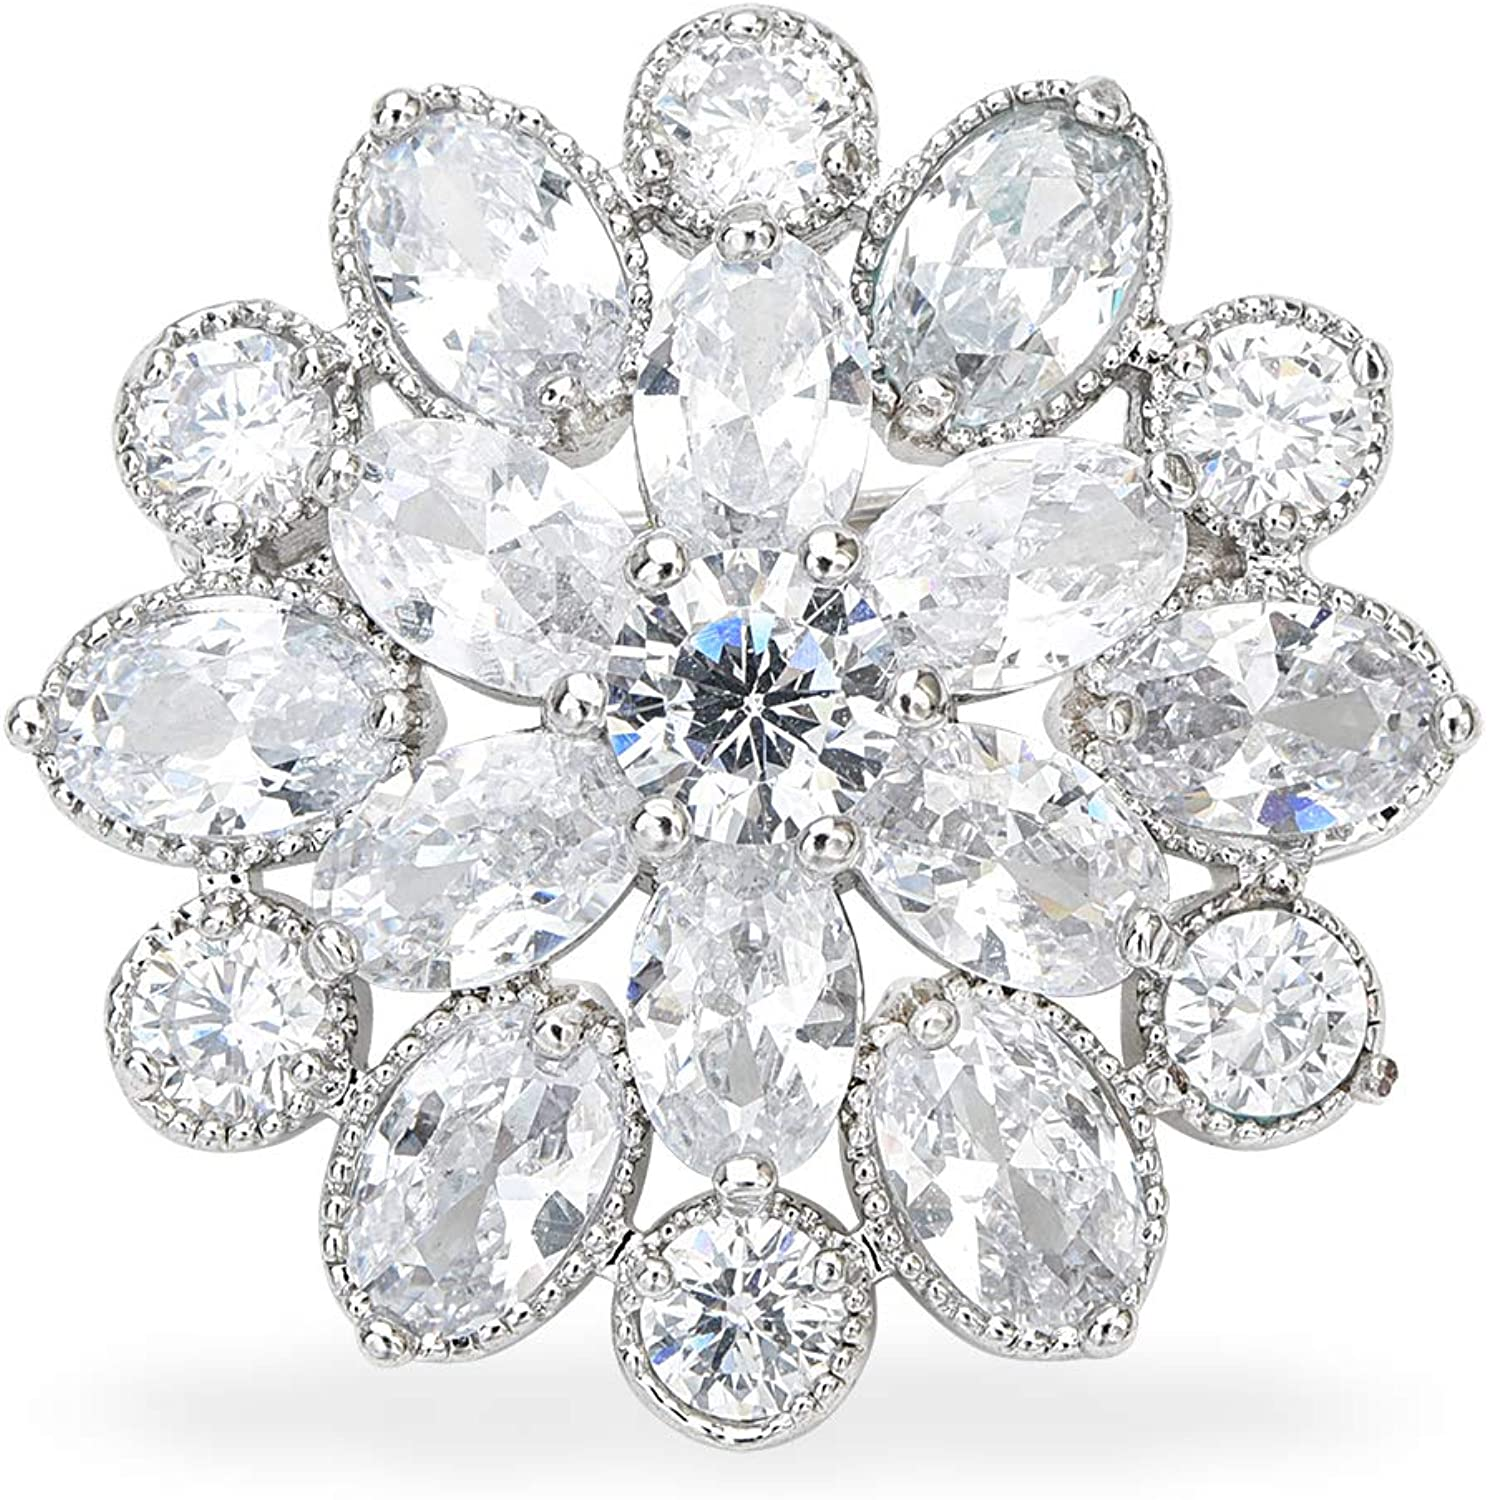 YYBONNIE Women's Cubic Zircon Camellia Brooch Pins Crystal Snowflake Flower Lapel Pin Mini Safety Pins Boutonniere Floral Breastpin Scarf Accessories